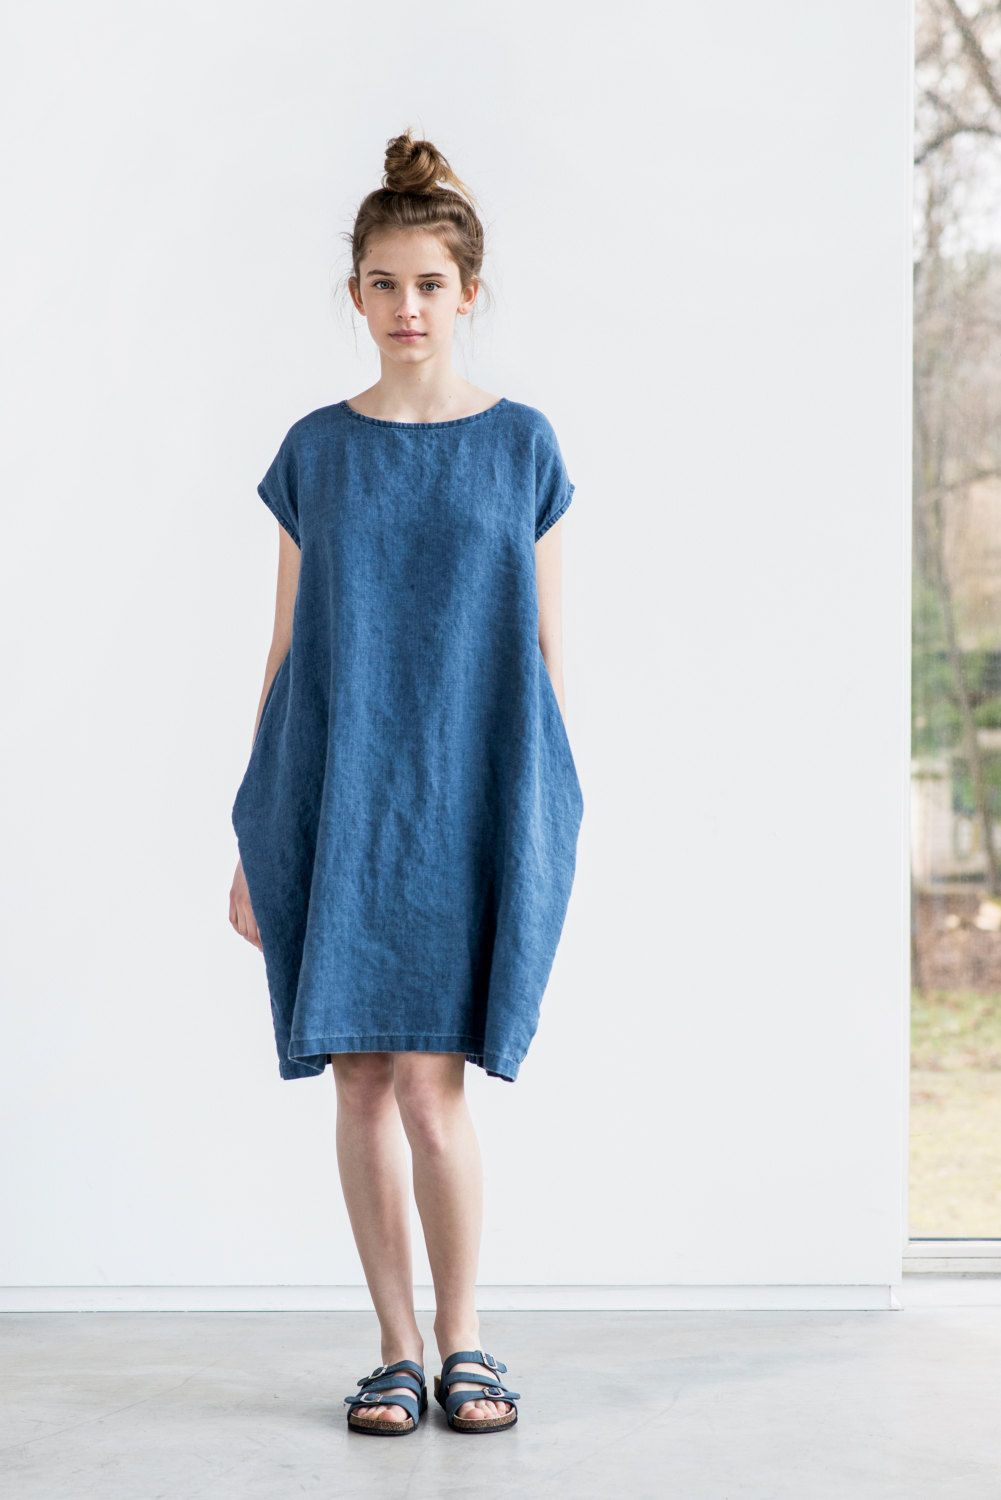 e2ebd1bf Denim color linen cocoon dress with short or 3/4 sleeves by notPERFECTLINEN  on Etsy